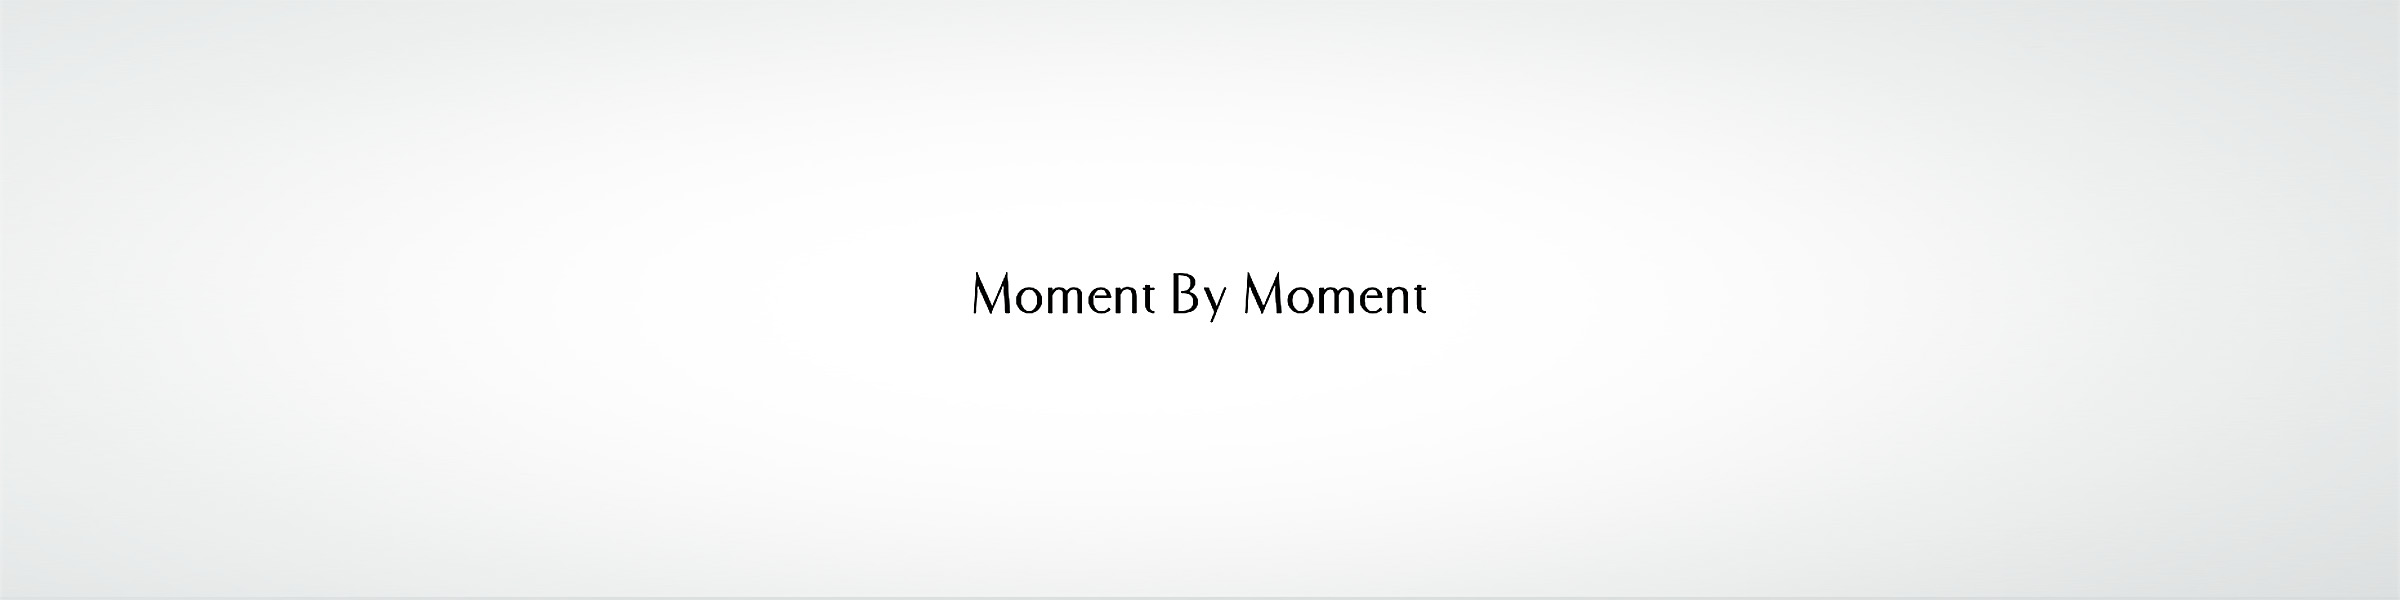 031997 MOMENT BY MOMENT